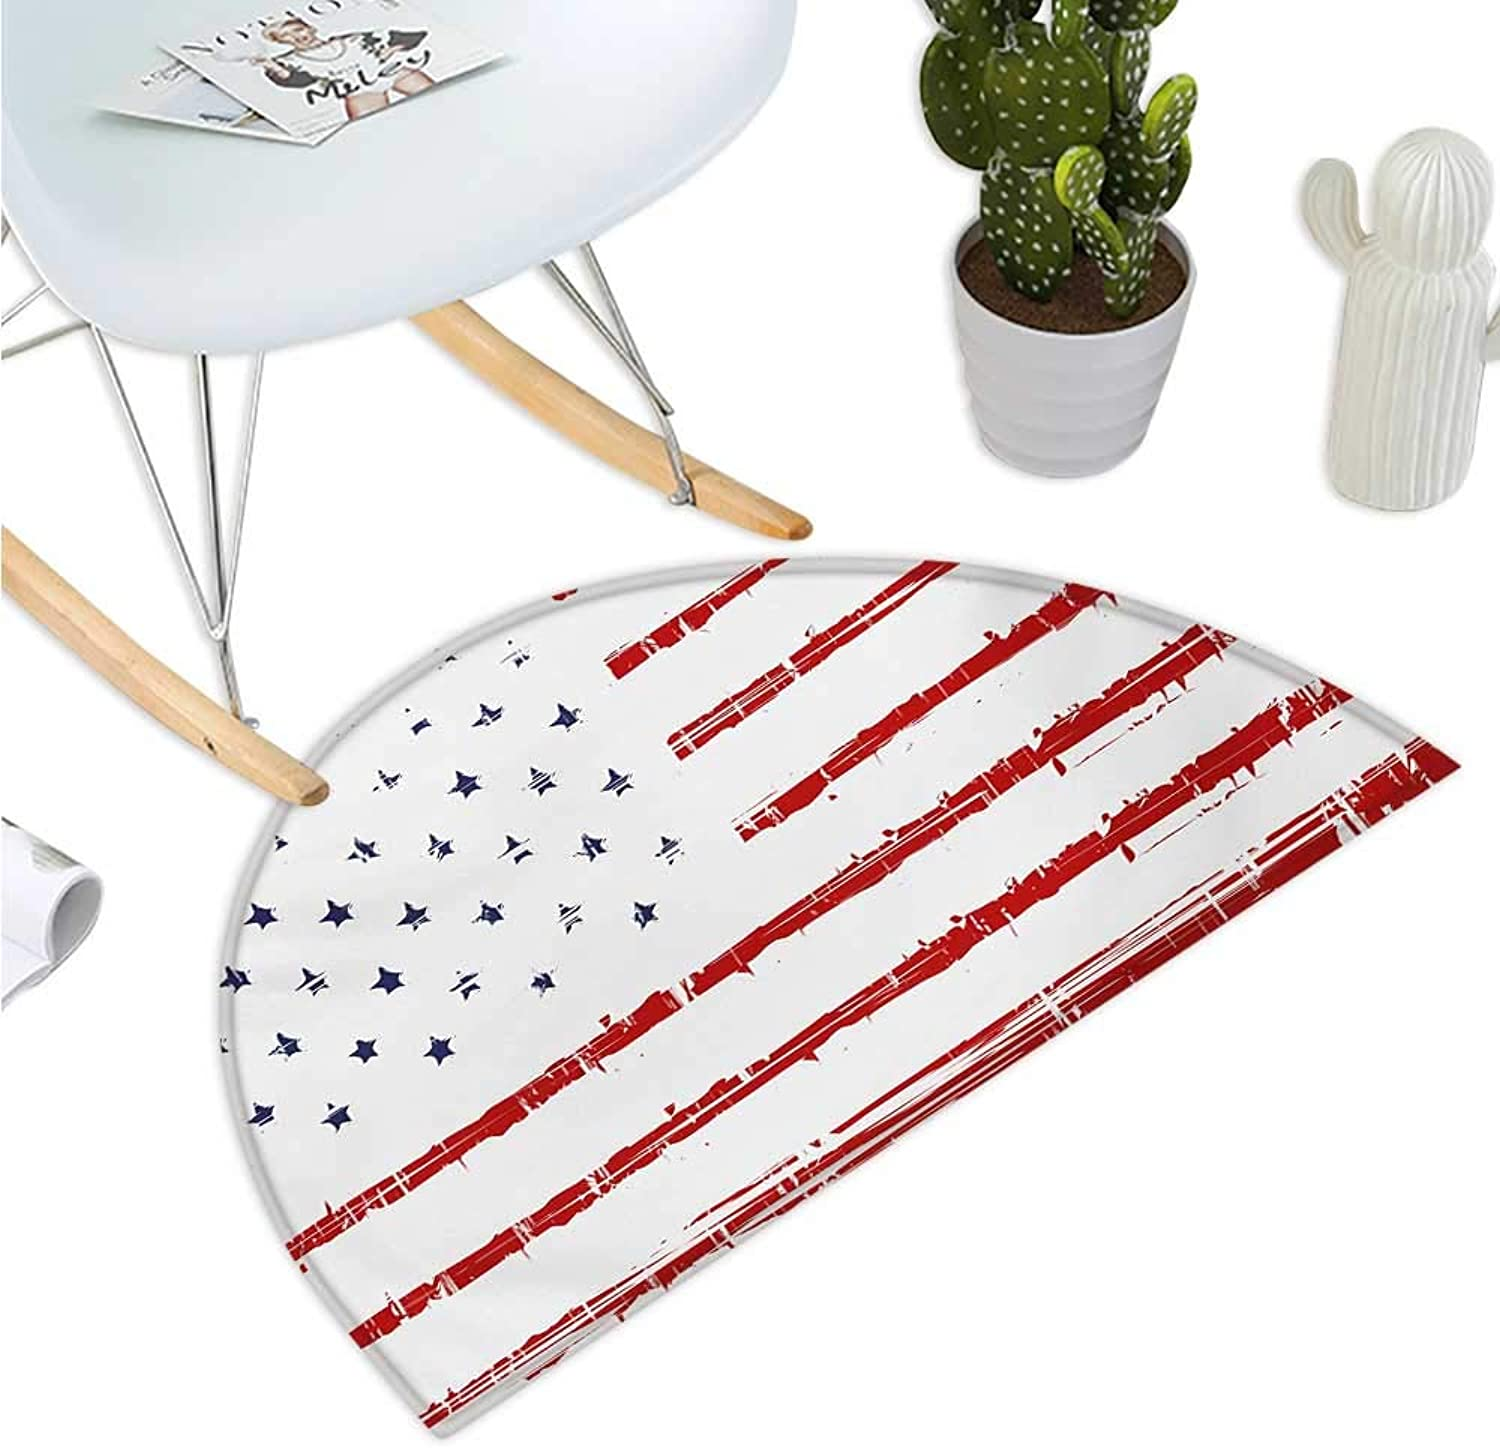 American Half Round Door mats Vector Grunge Texture Flag of United States of America Illustration Print Bathroom Mat H 39.3  xD 59  bluee White and Red